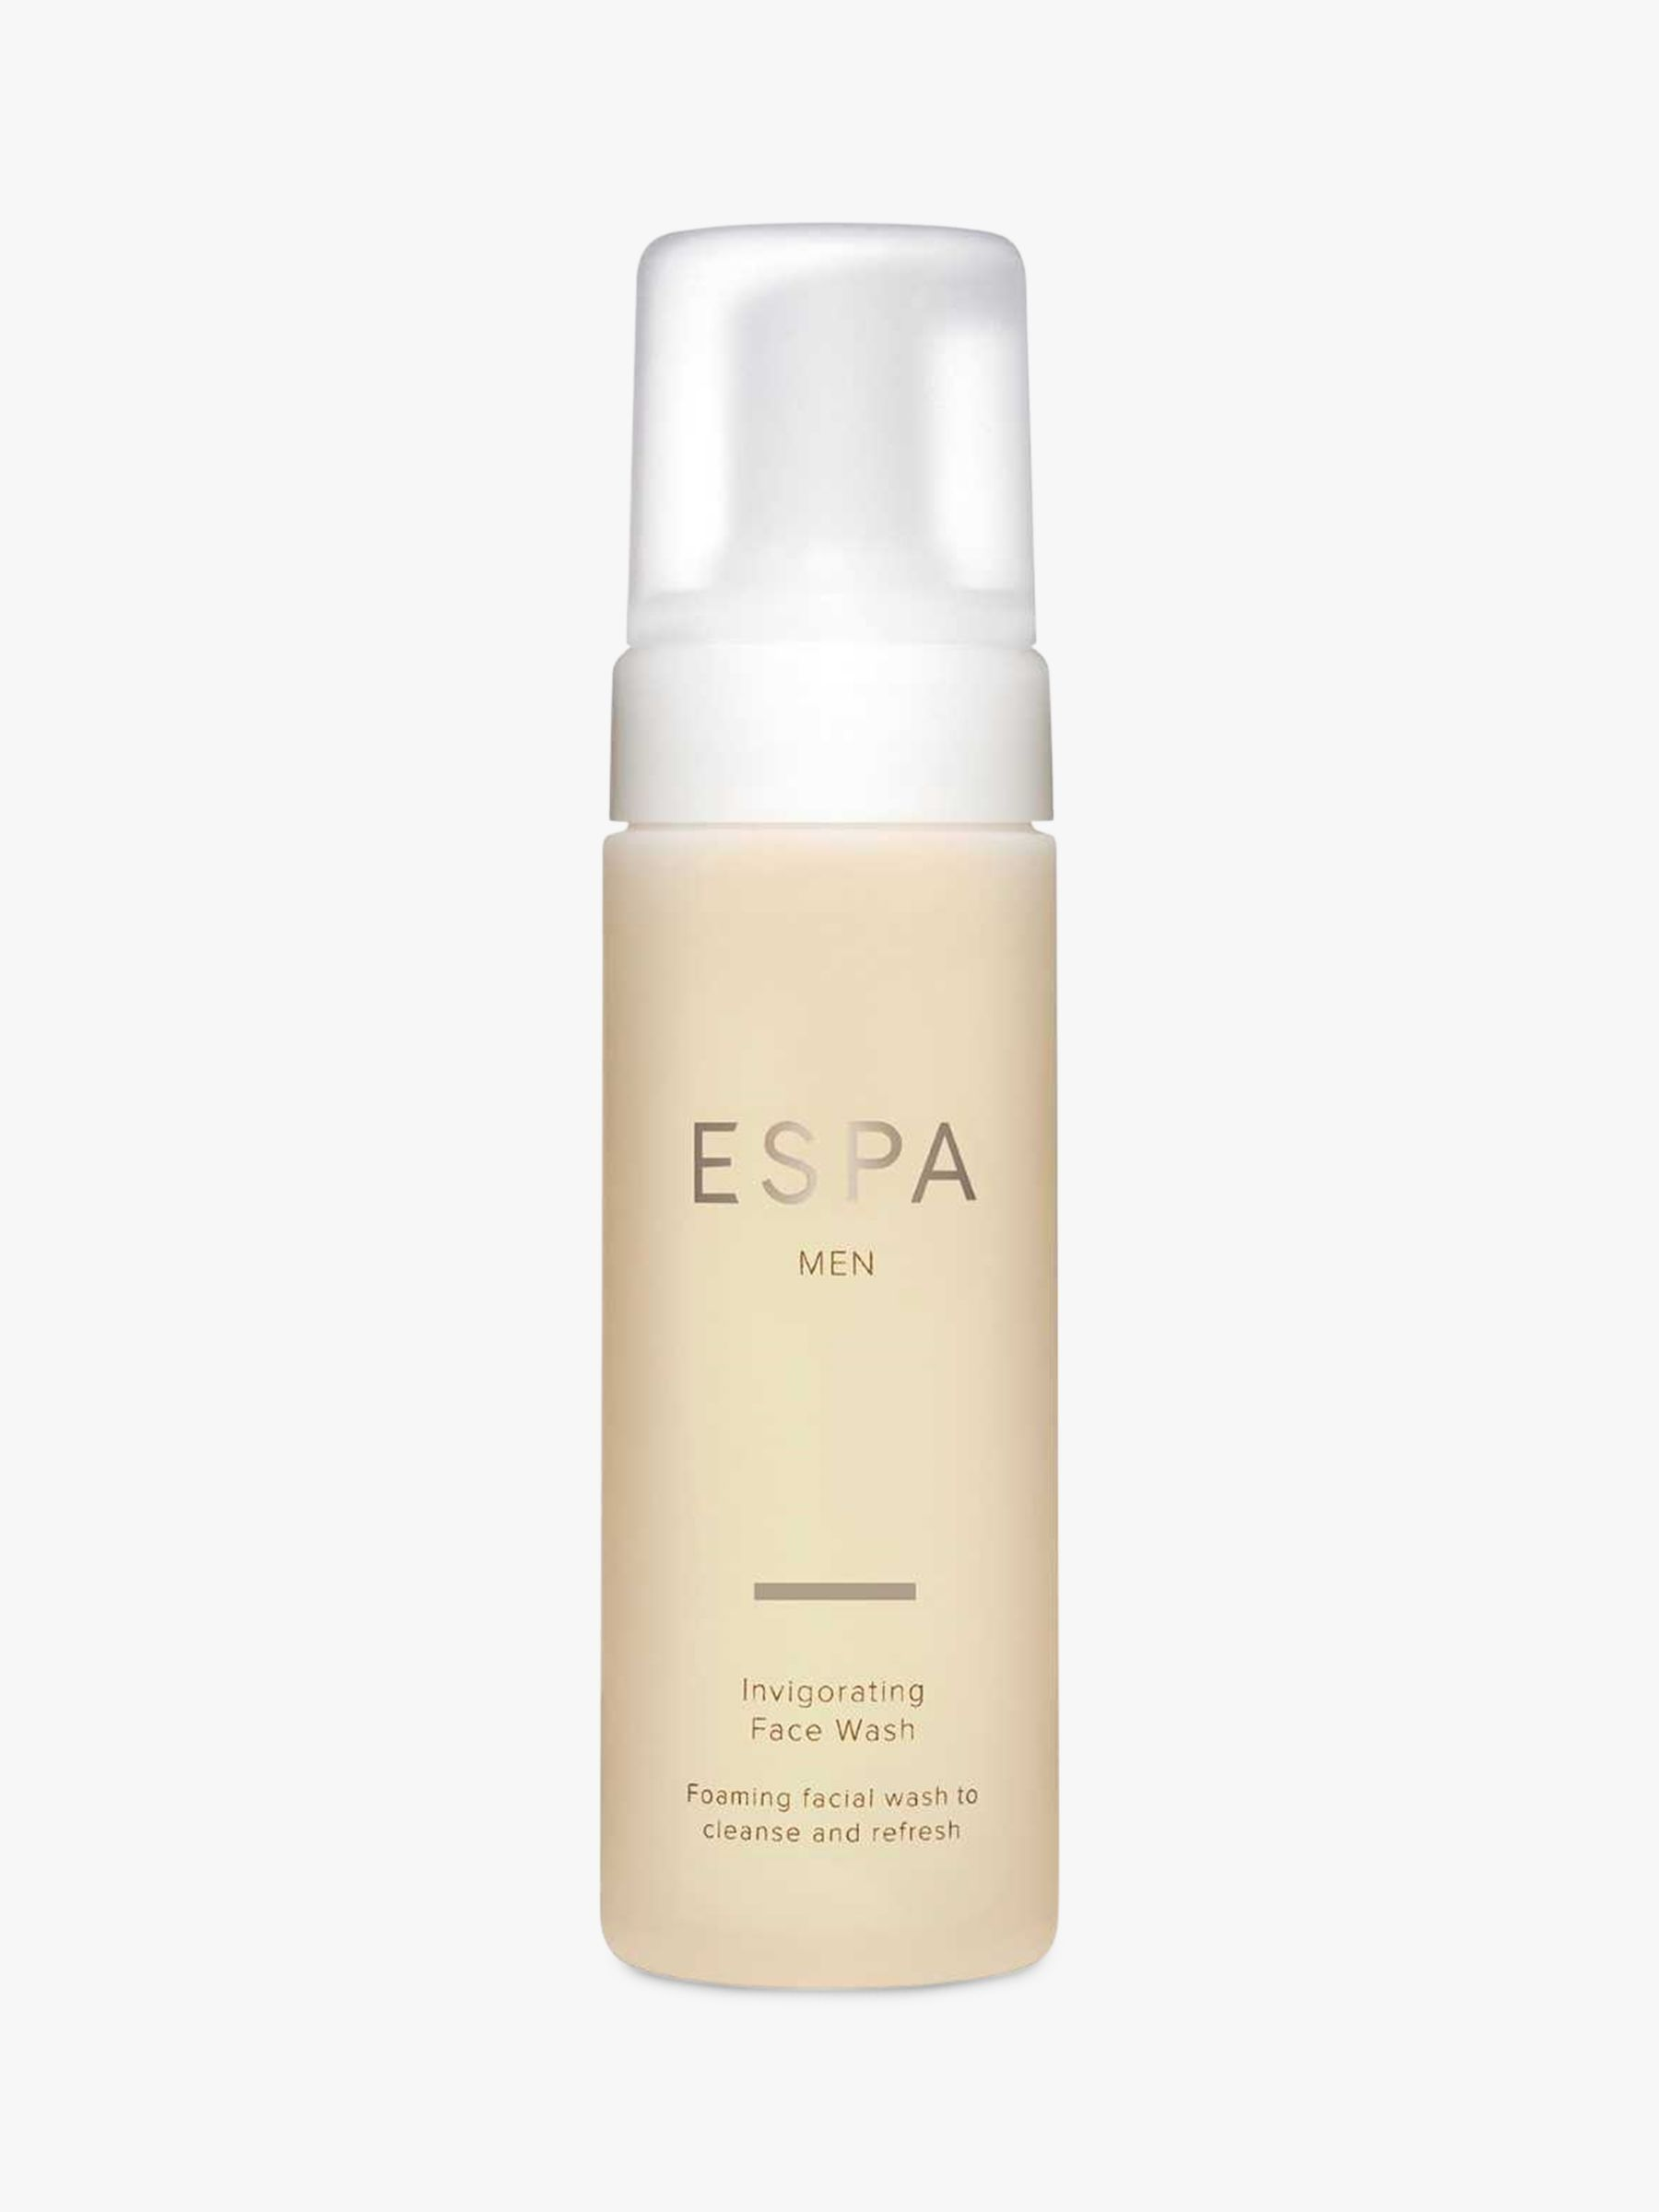 ESPA ESPA Invigorating Face Wash, 150ml